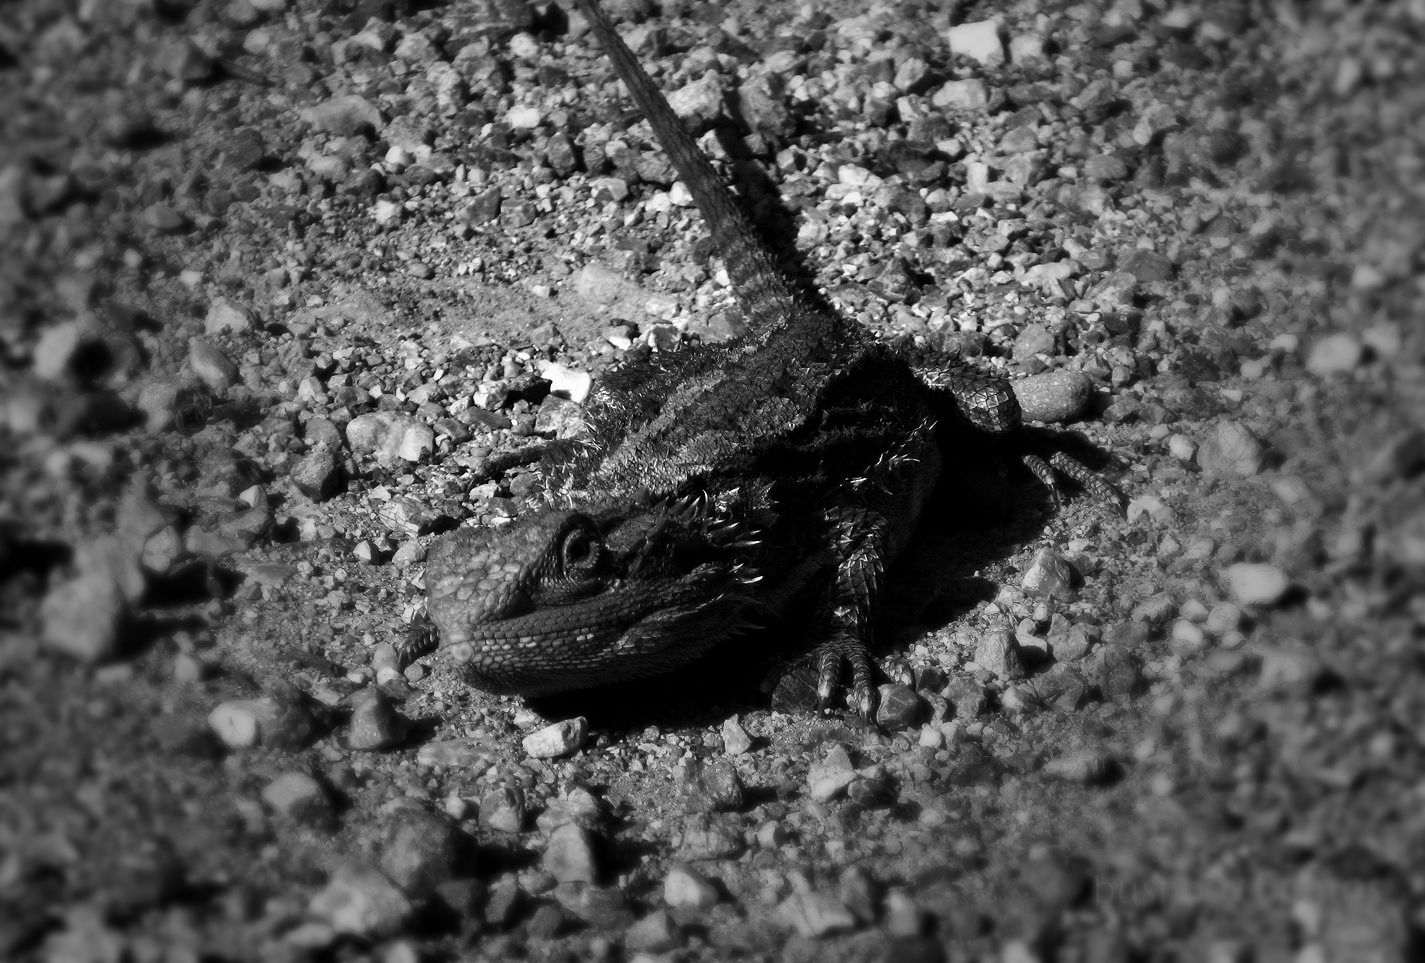 191115_blog_challenge_blackandwhite_letterL_lizard_bearded dragon